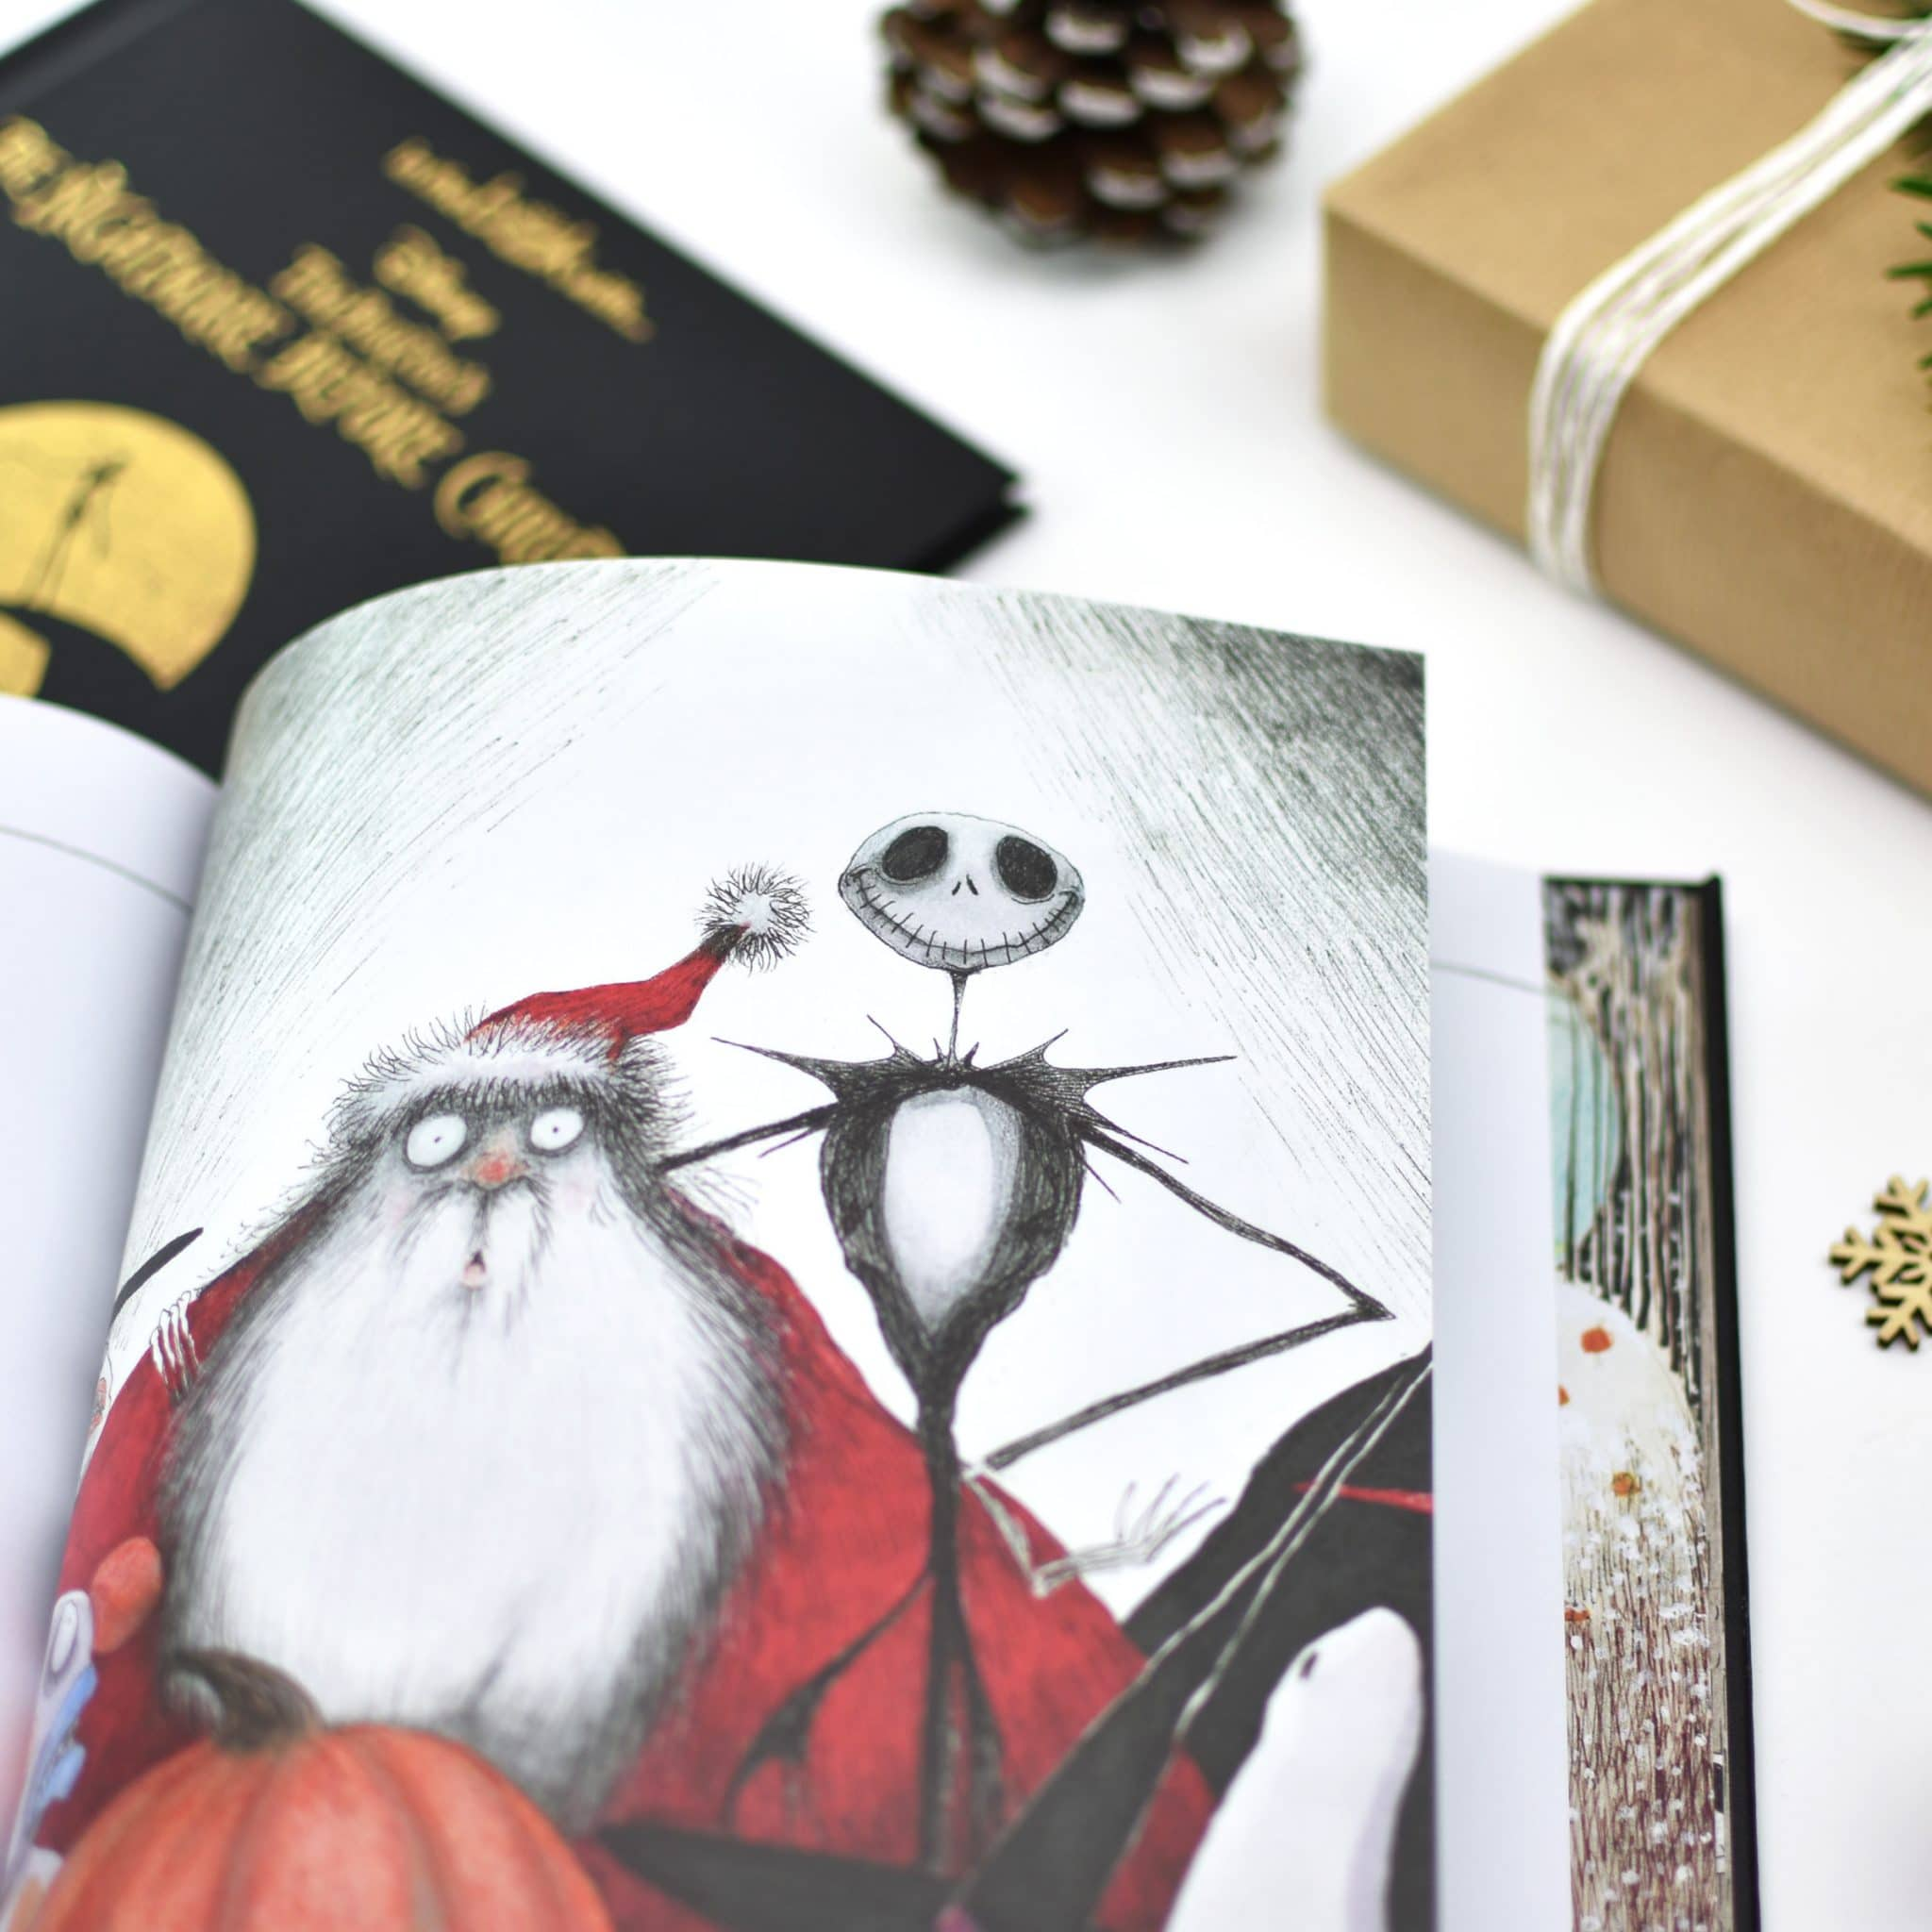 Free Comic Book Day Nightmare Before Christmas: Personalized Nightmare Before Christmas Book